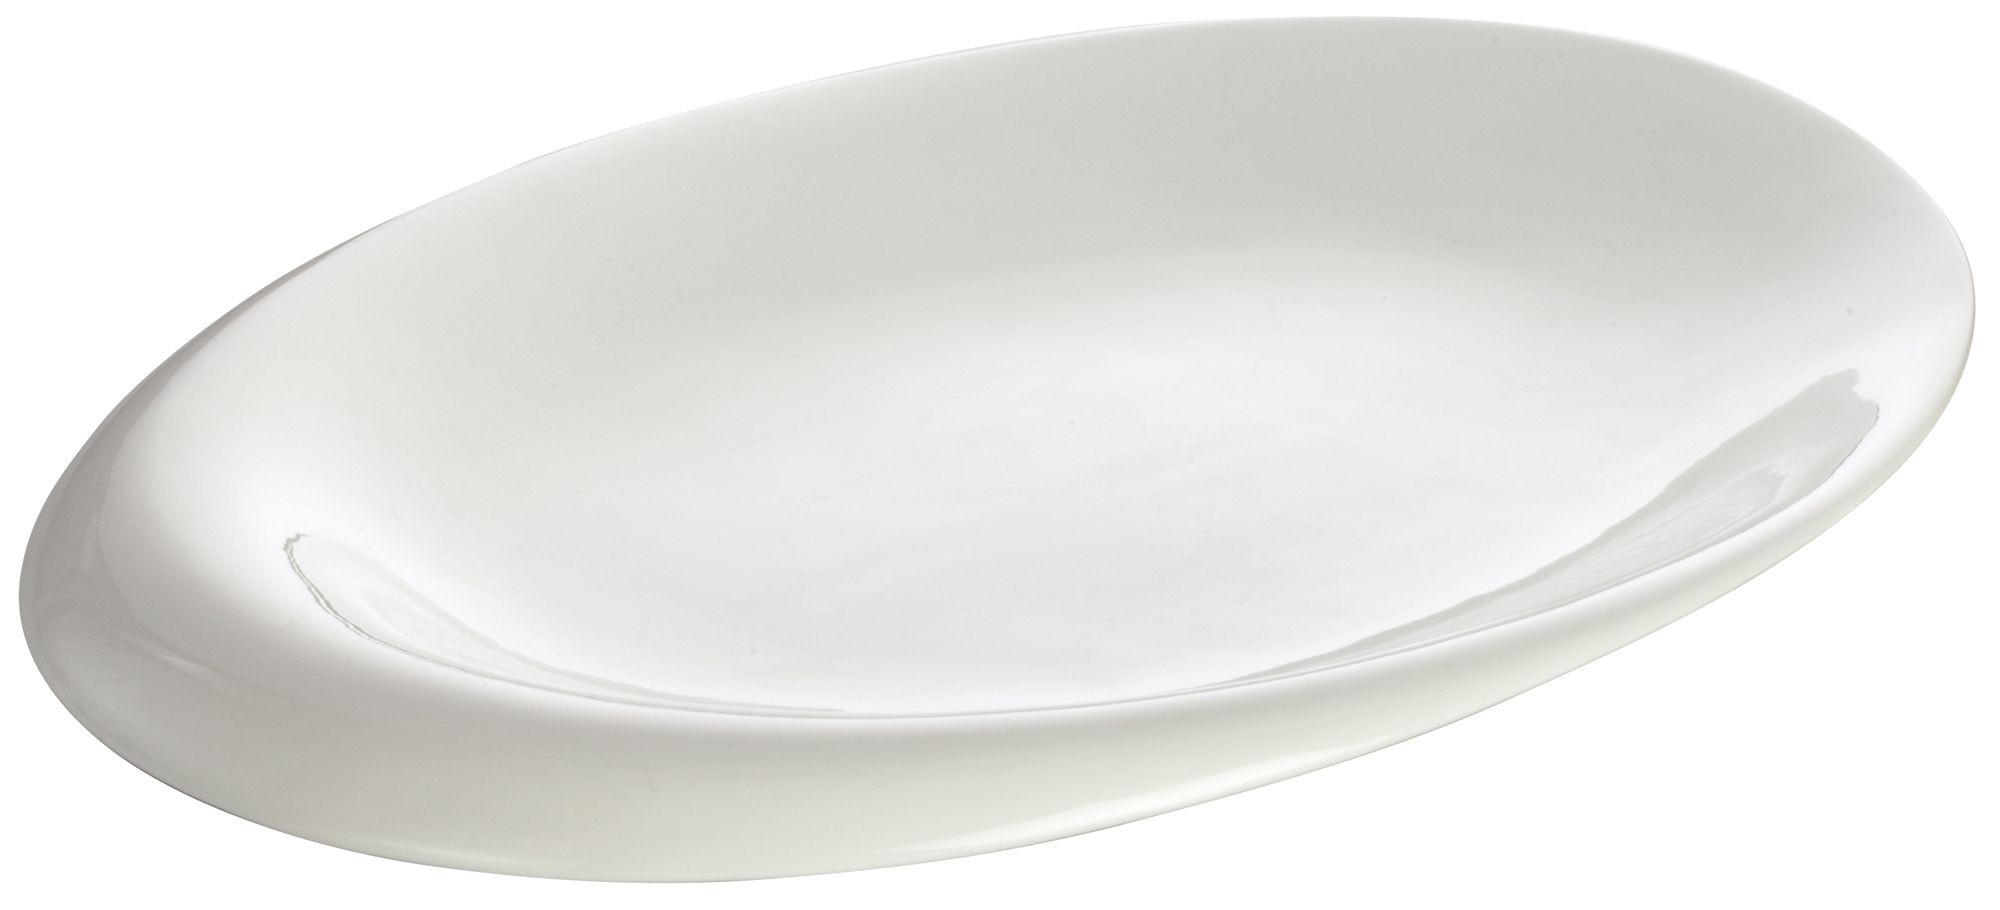 "Winco WDP004-212 Ocea Creamy White Porcelain Oval Bowl 16"" x 12-1/4"""